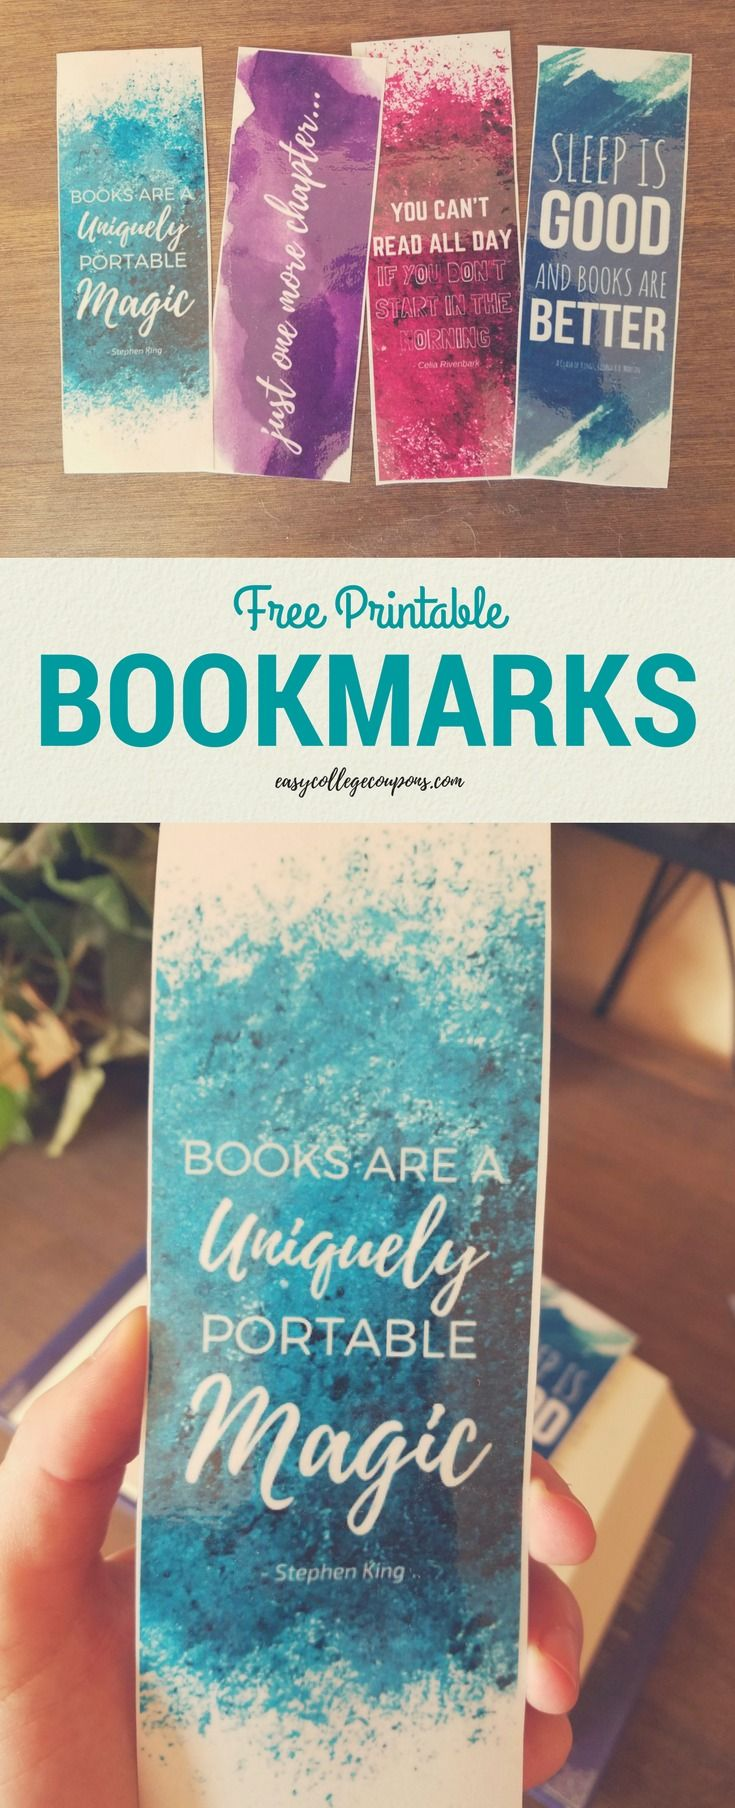 free printable bookmarks with quotes about reading free